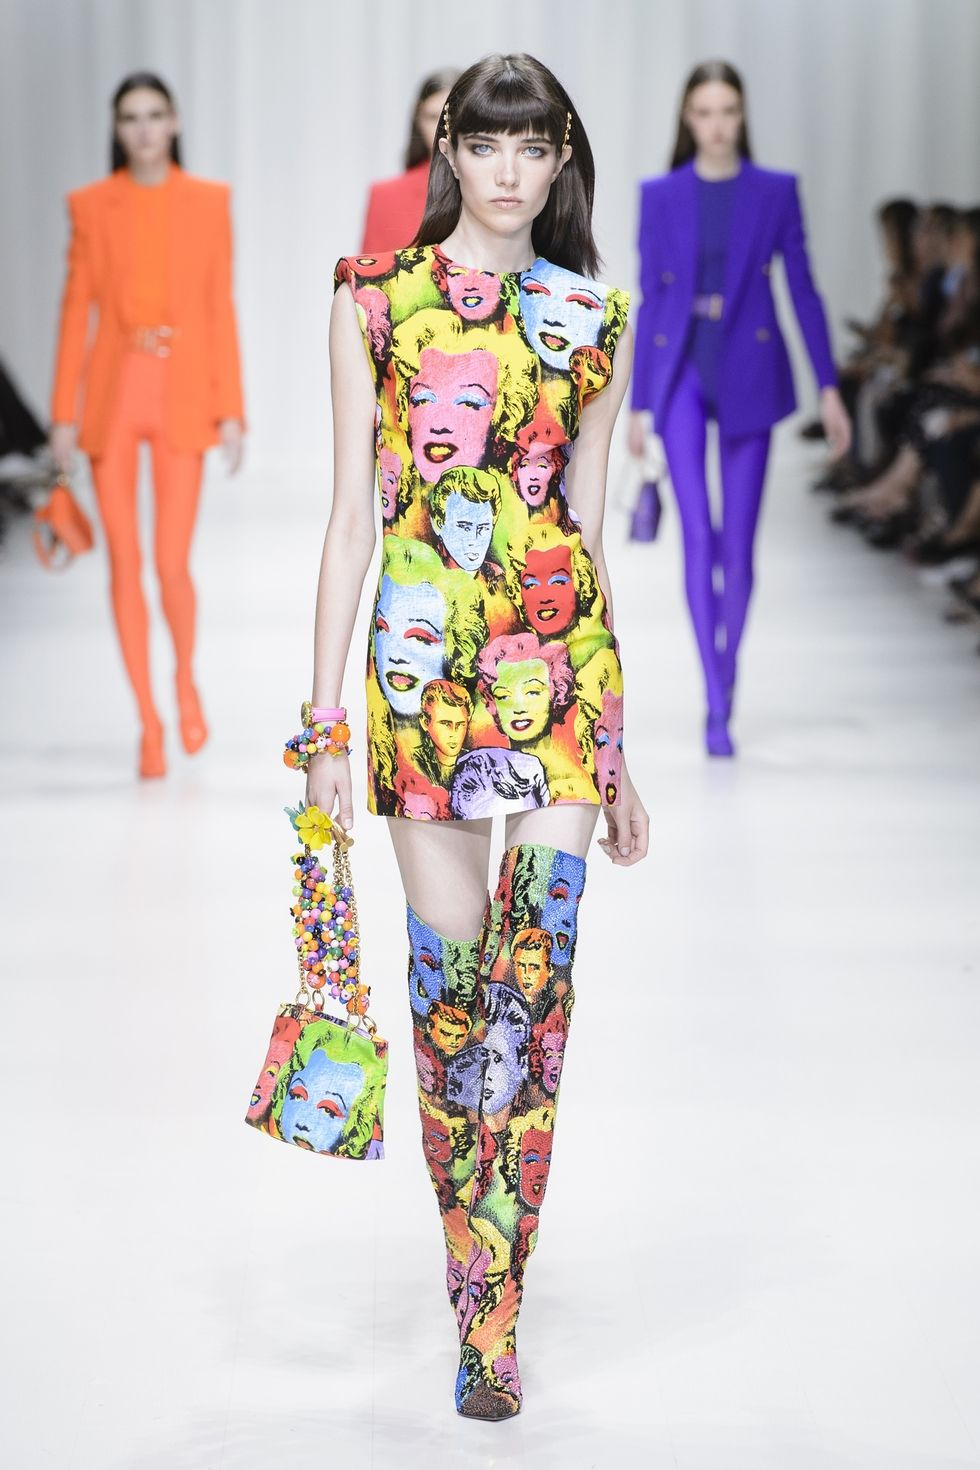 hbz nyfw ss2018 trends art prints 03 versace rs18 6232 1509388475